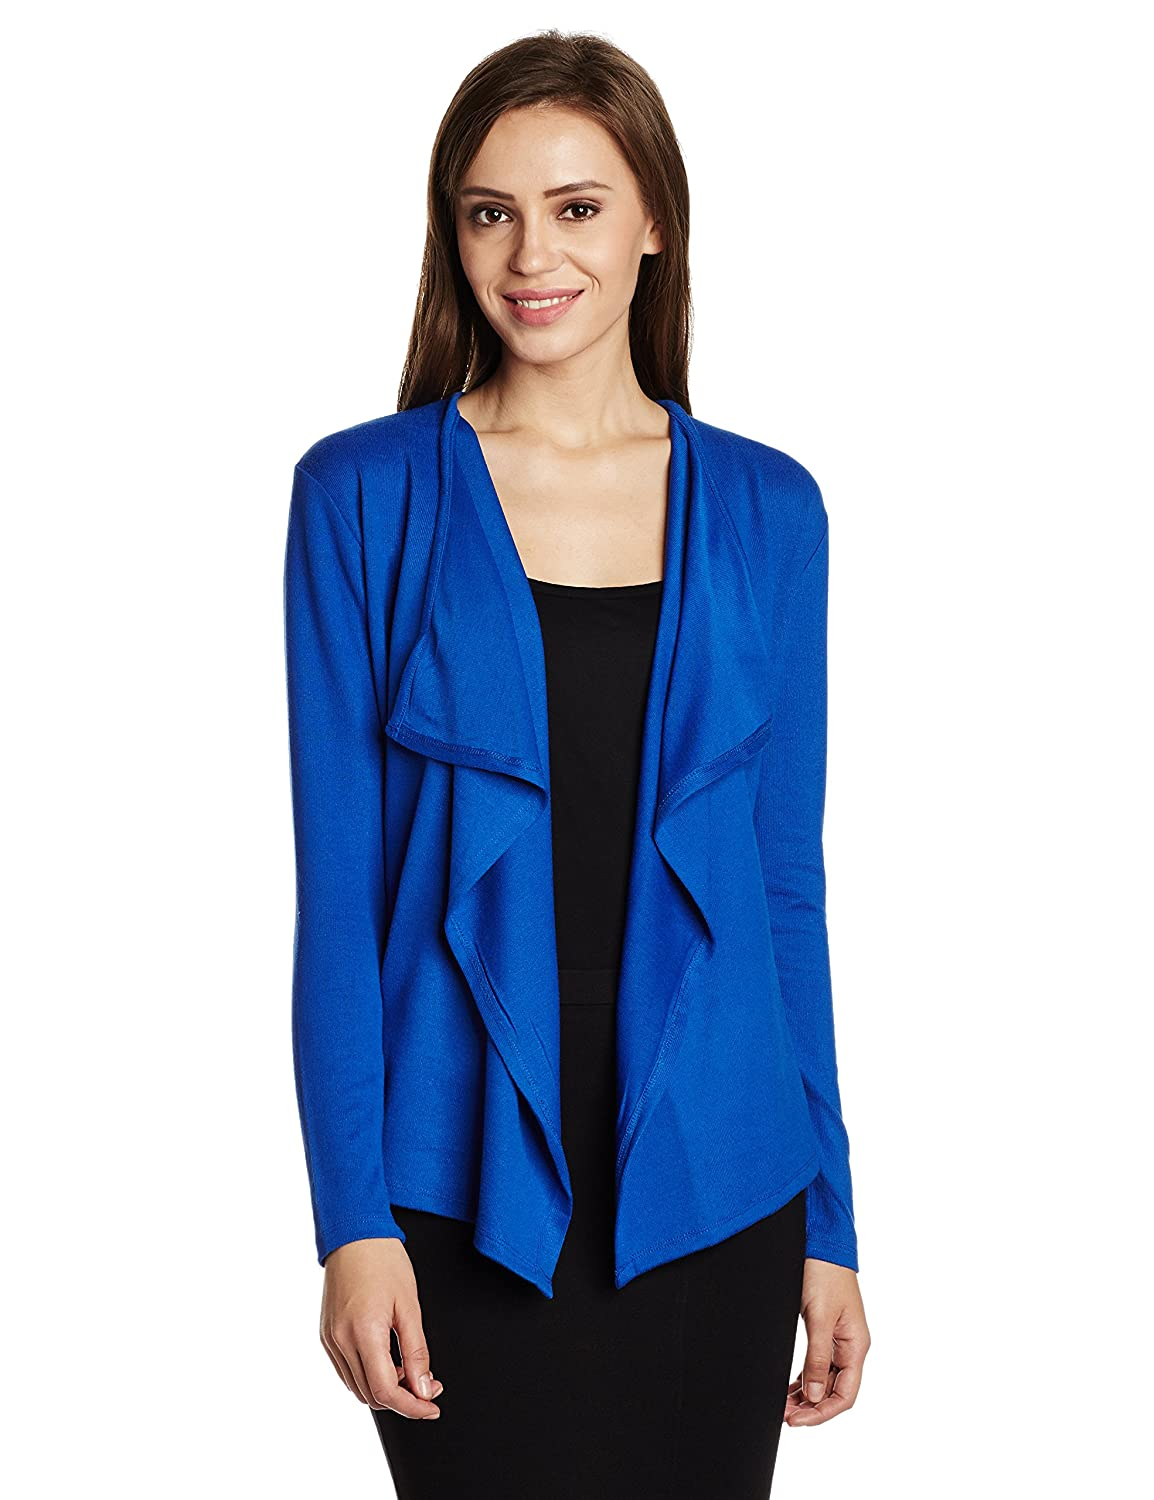 Women Fashions at great discounts